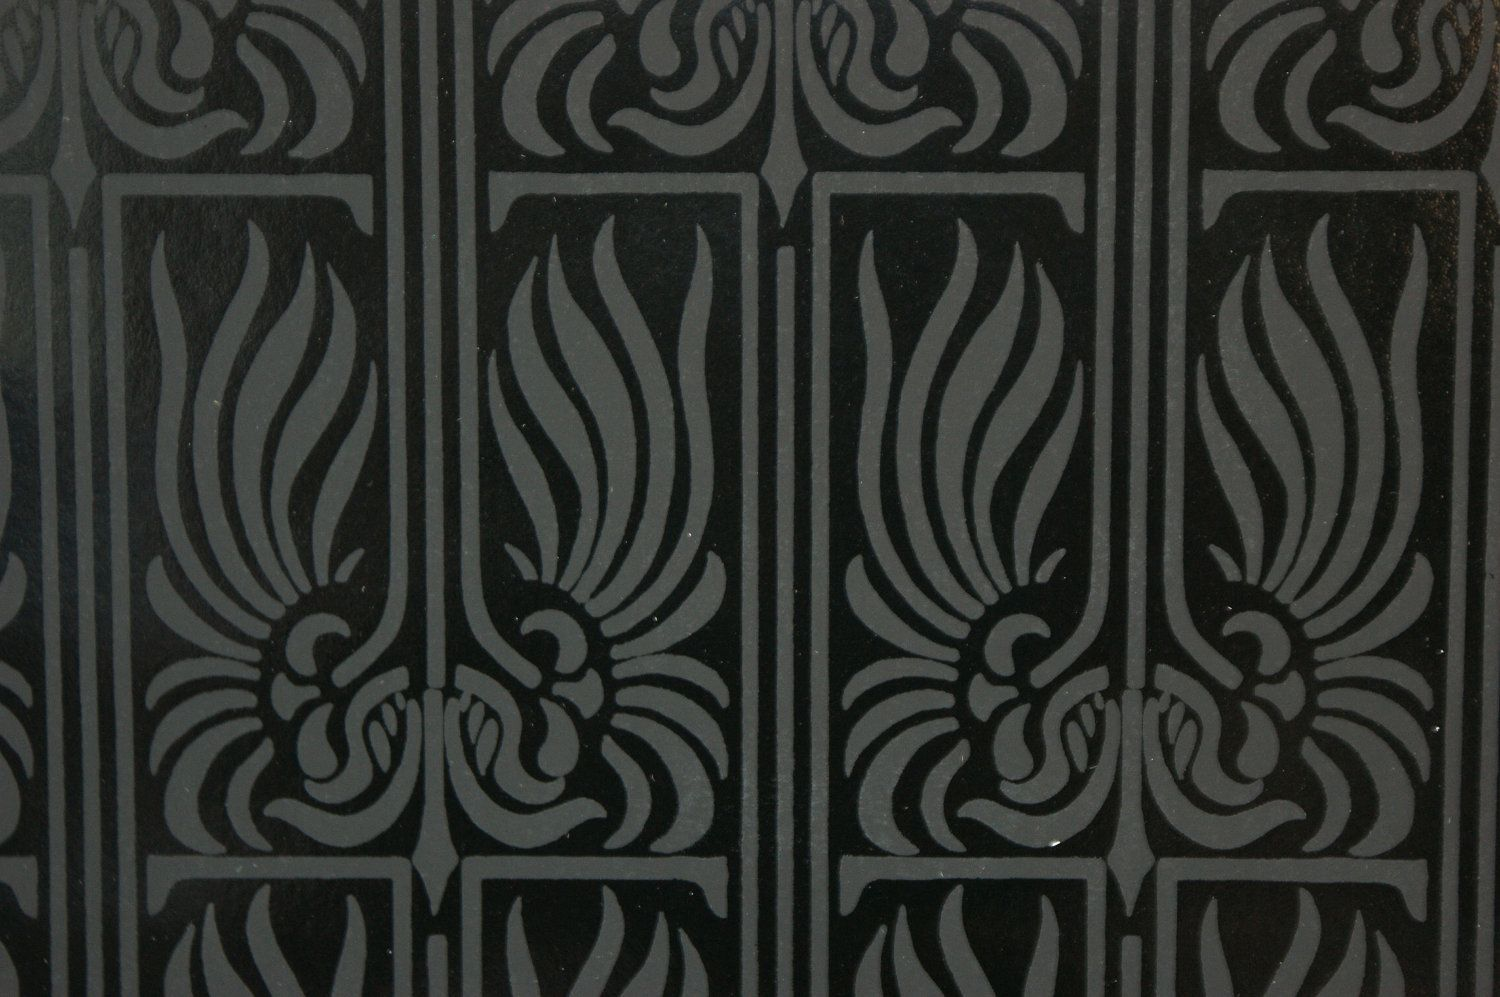 Art deco wallpaper Surface Design Pinterest Art deco